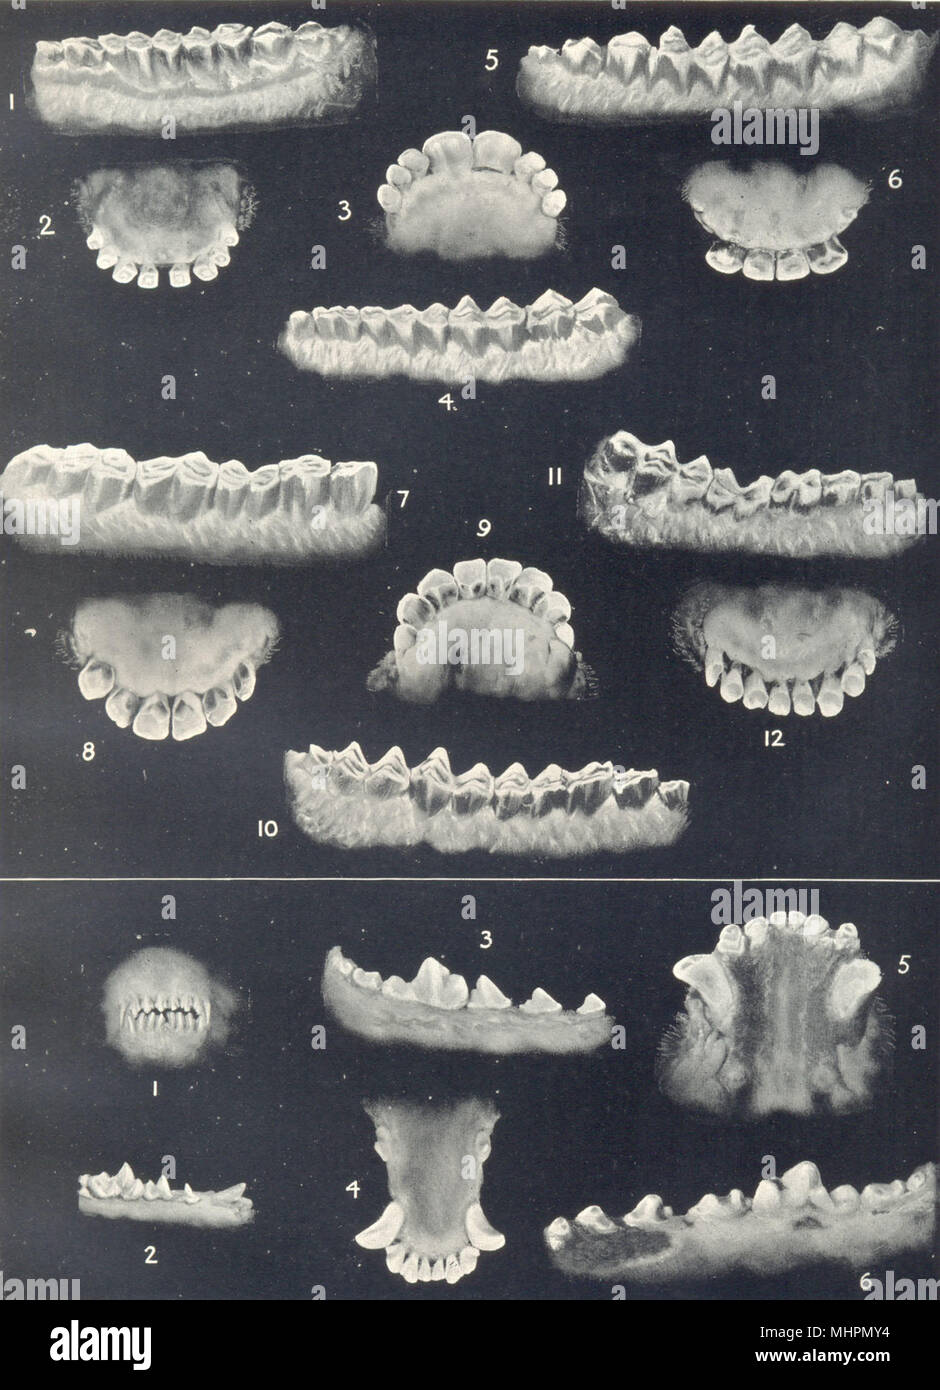 AGE OF SHEEP & DOGS. Dentition. Molars and incisors at various ages 1912 print - Stock Image